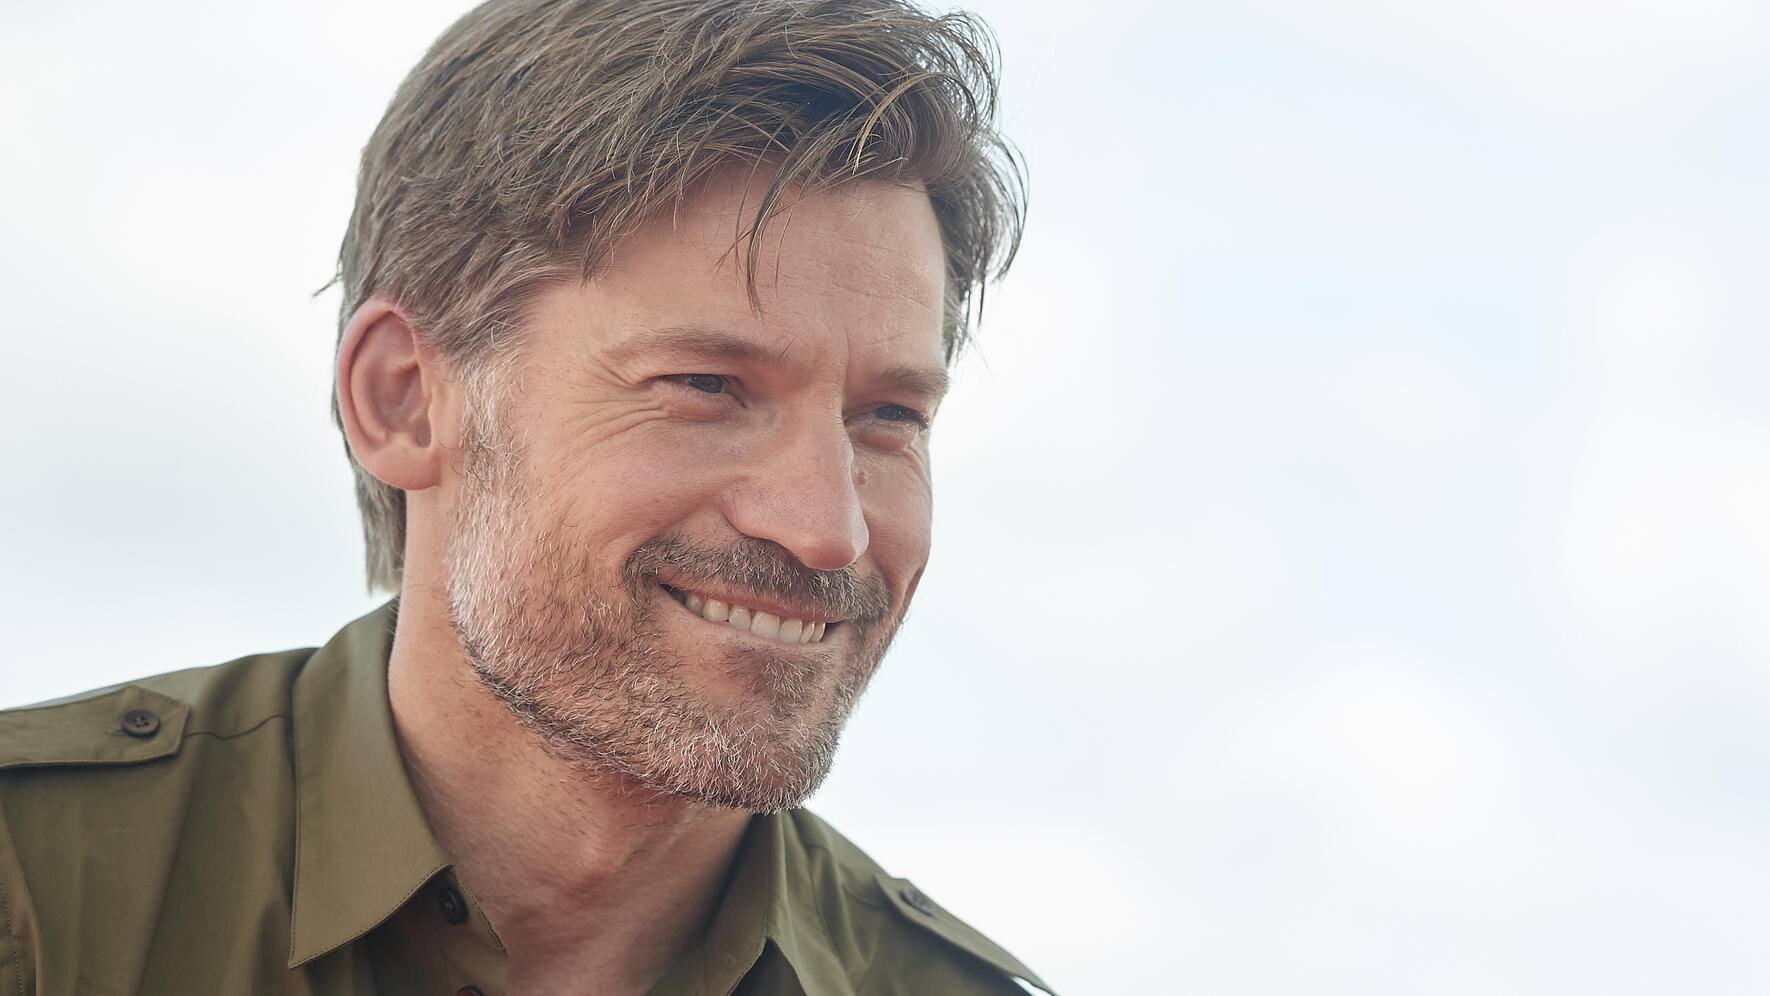 SITGES, SPAIN - OCTOBER 04: Actor Nikolaj Coster-Waldau during photocall of 'Suicide Tourist' on October 04, 2019 in Sitges, Spain. (Photo by Borja B. Hojas/Getty Images)